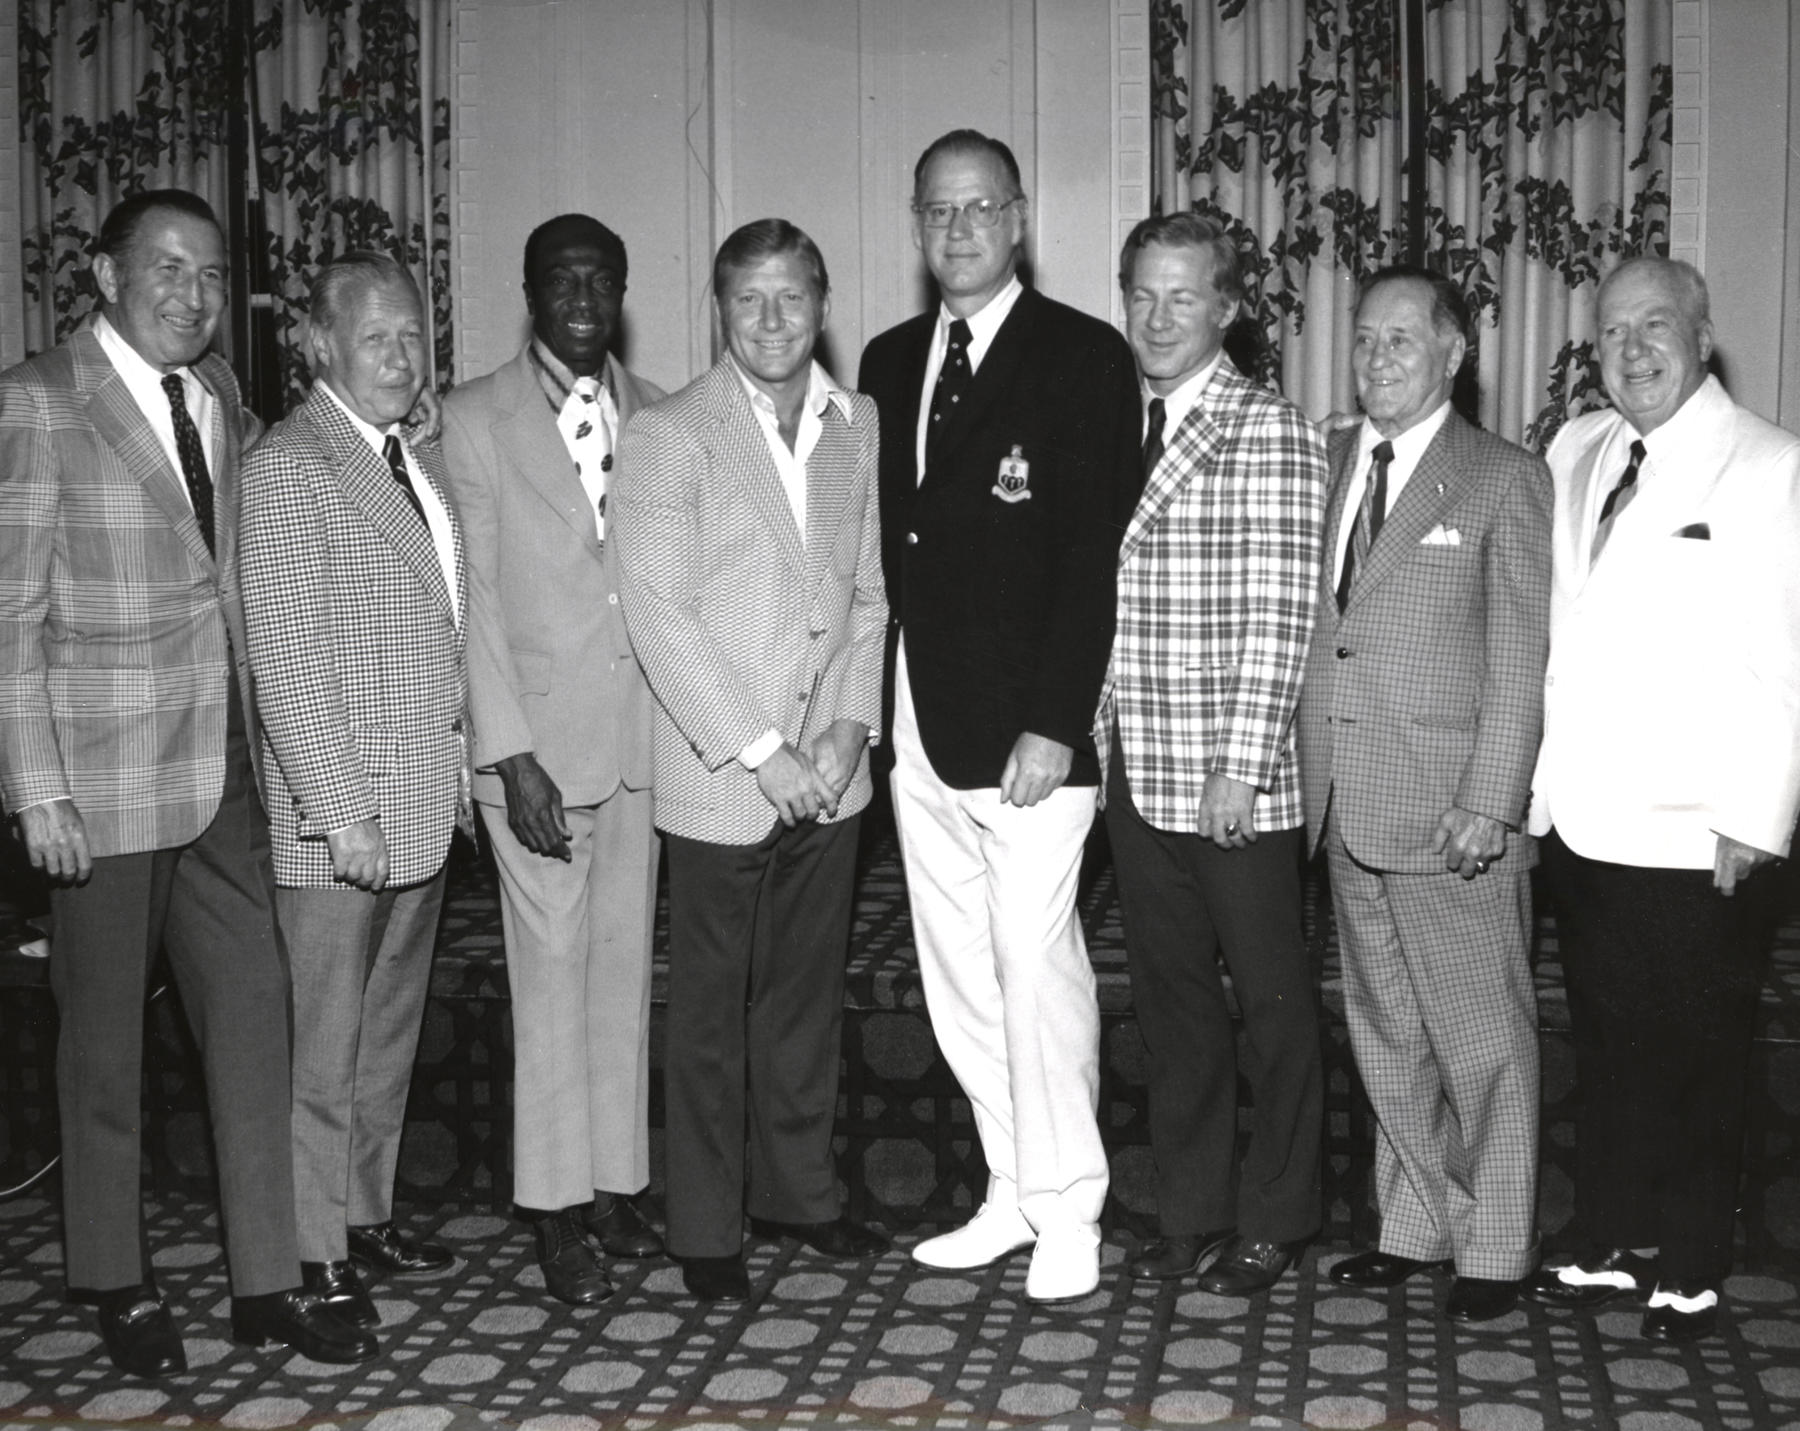 From left, National League President Chub Feeney, American League President Lee MacPhail, inductees Cool Papa Bell and Mickey Mantle, Commissioner Bowie Kuhn, inductees Whitey Ford and Jocko Conlan and former NL President Warren Giles stand for a photo during the 1974 Hall of Fame Weekend. BL-6450-76 (National Baseball Hall of Fame Library)